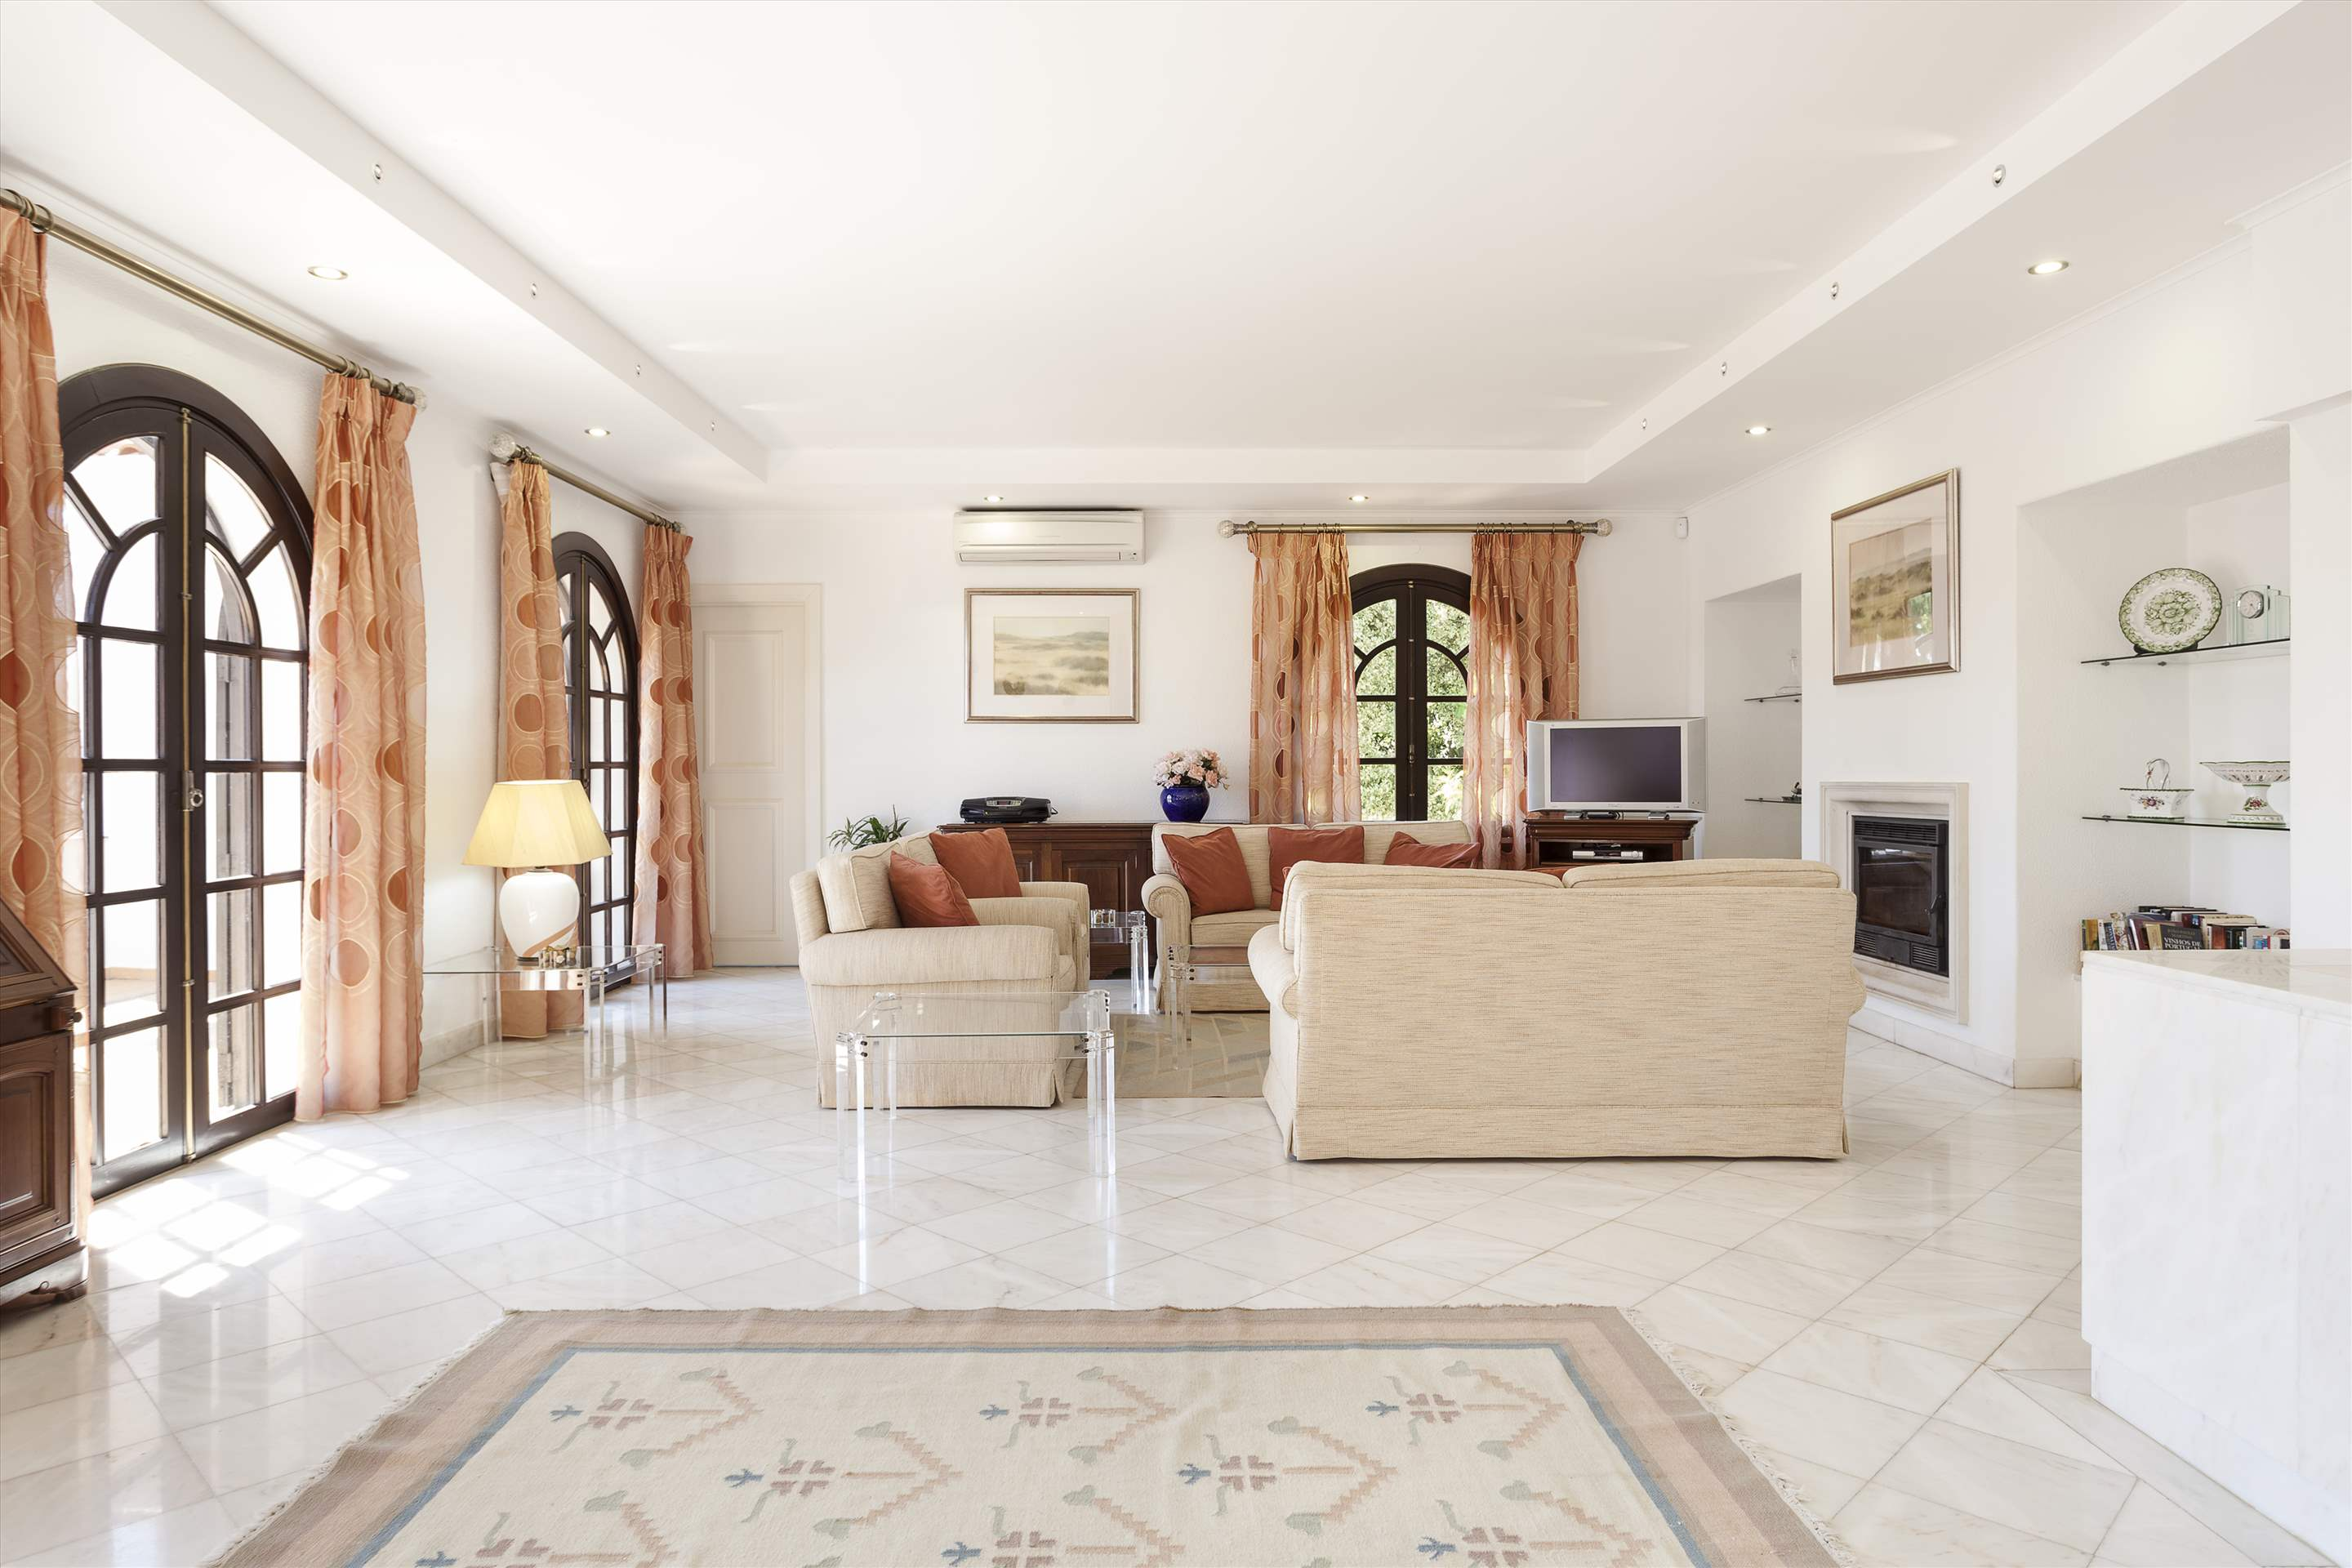 Villa Lake View, 4 bedroom villa in Quinta do Lago, Algarve Photo #6